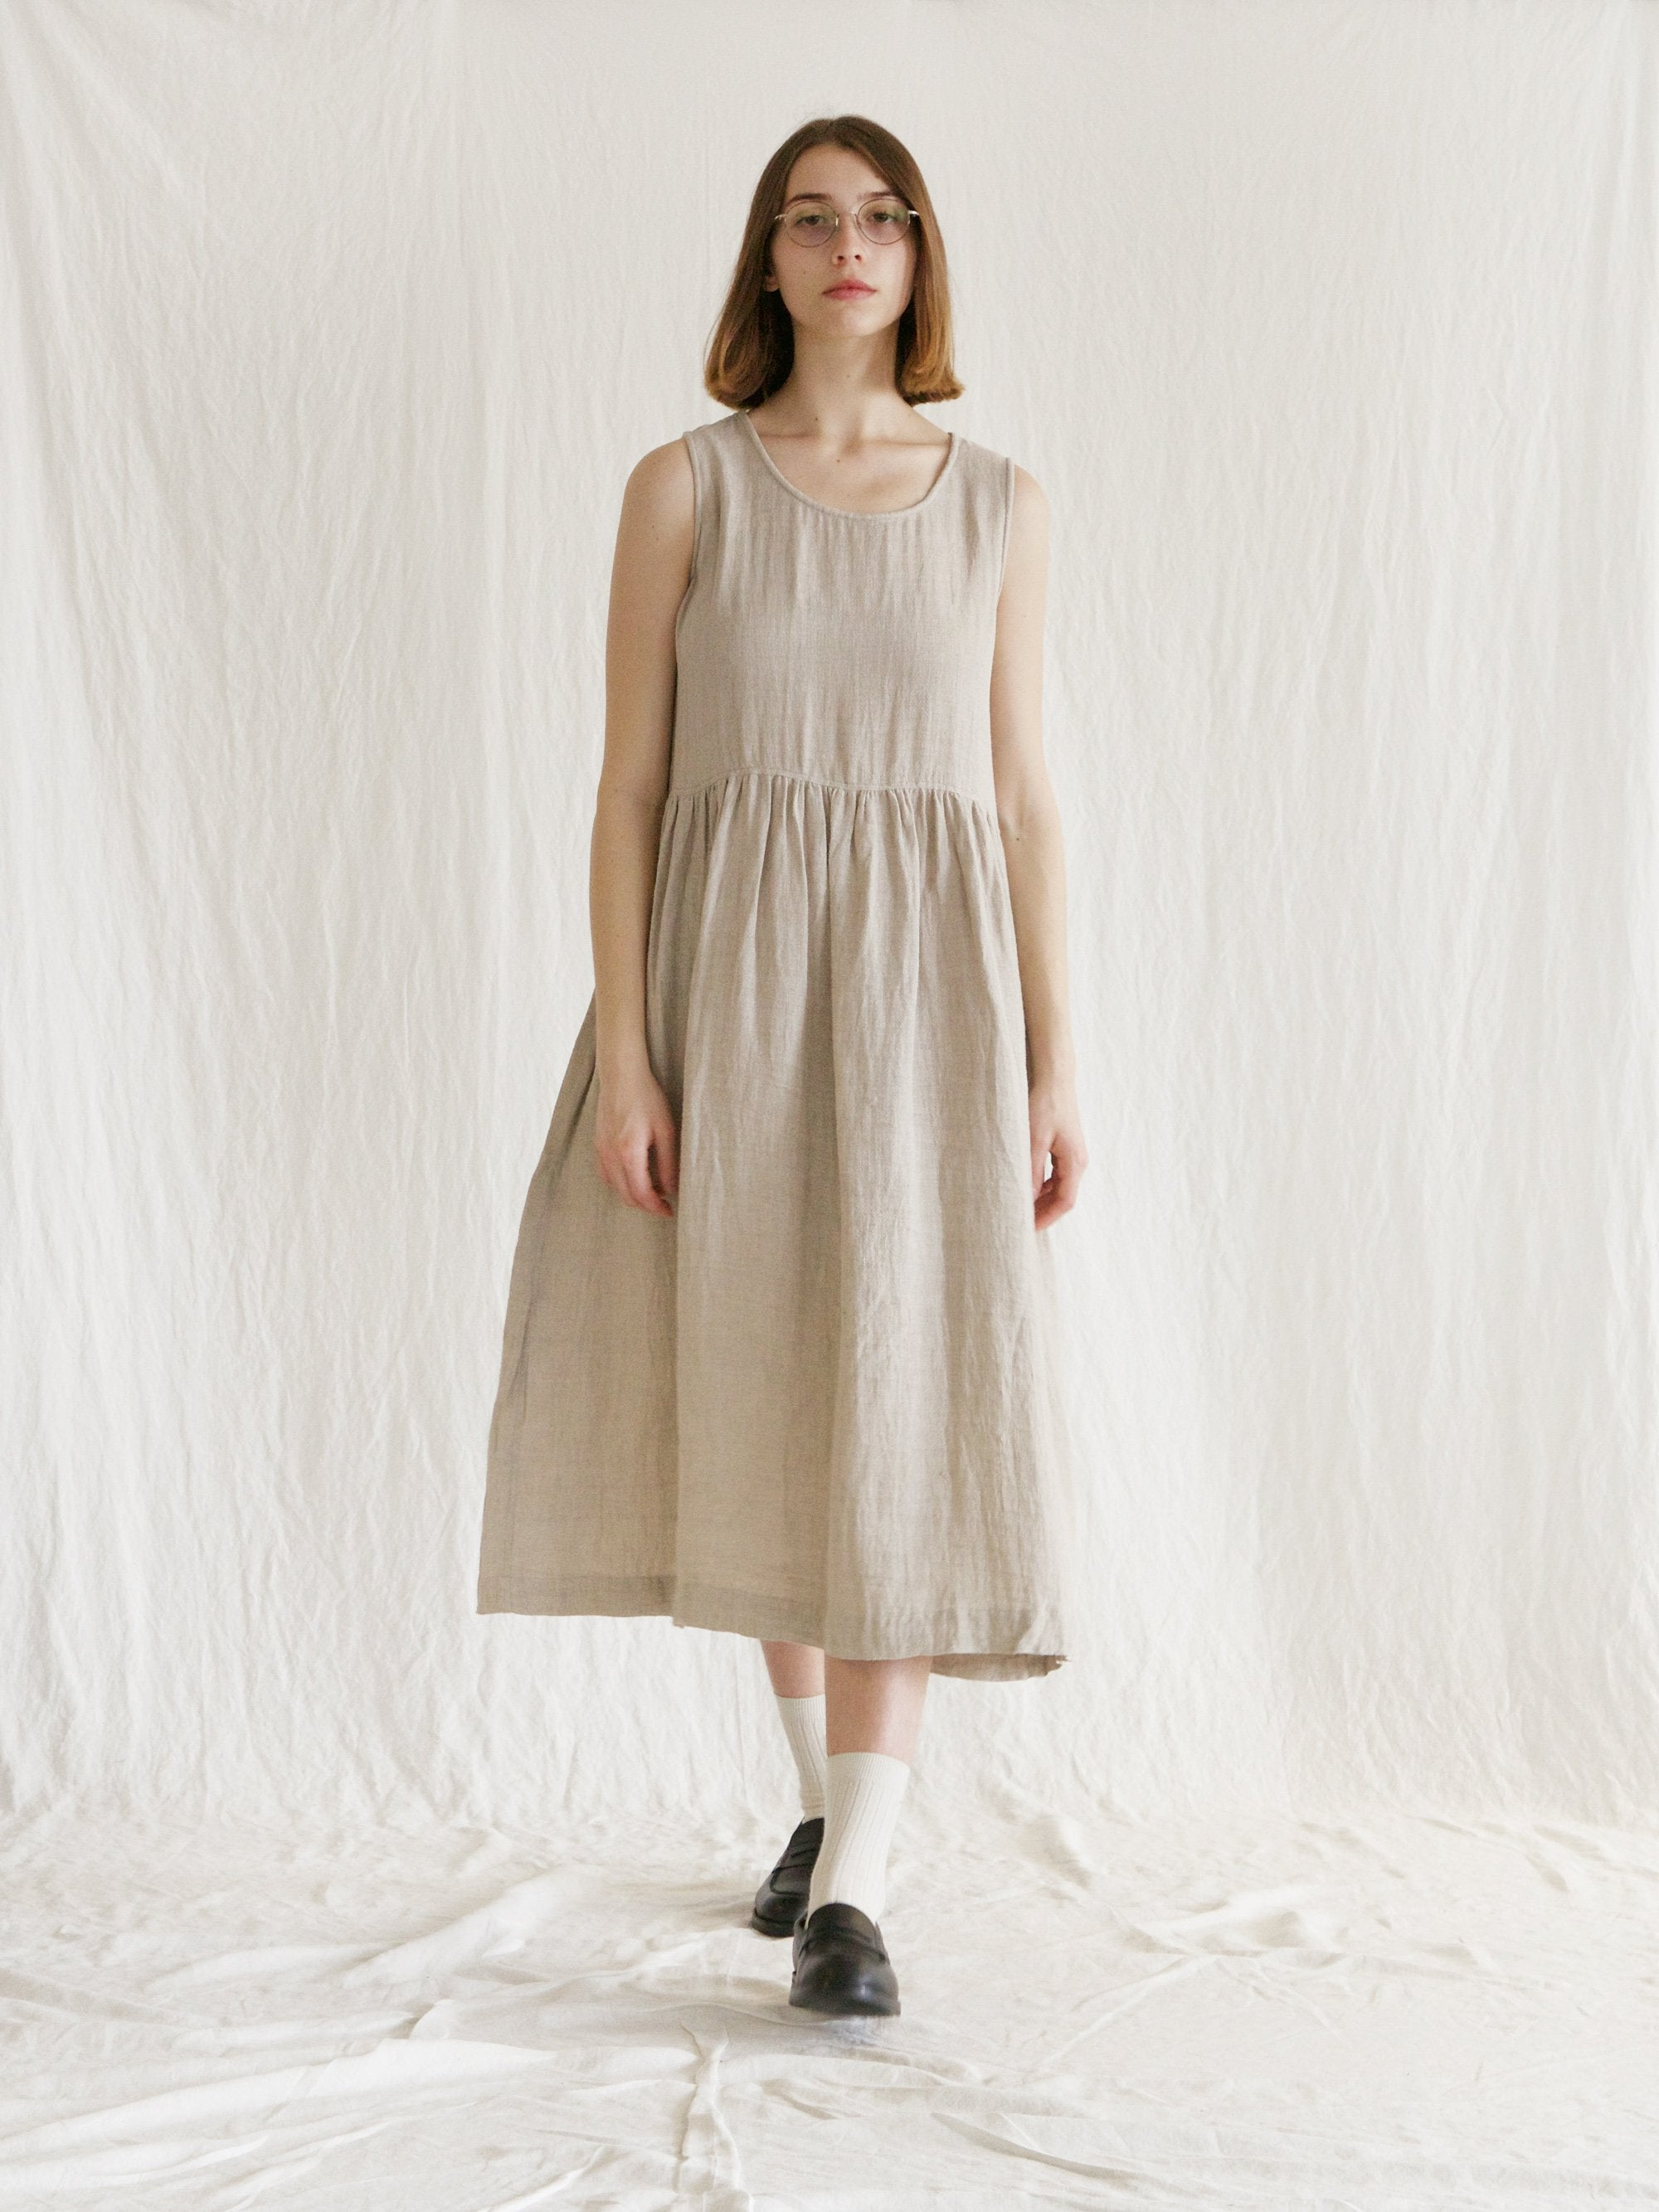 Namu Shop - Ichi Antiquites Double Weave Azumadaki Sleeveless Dress - Natural